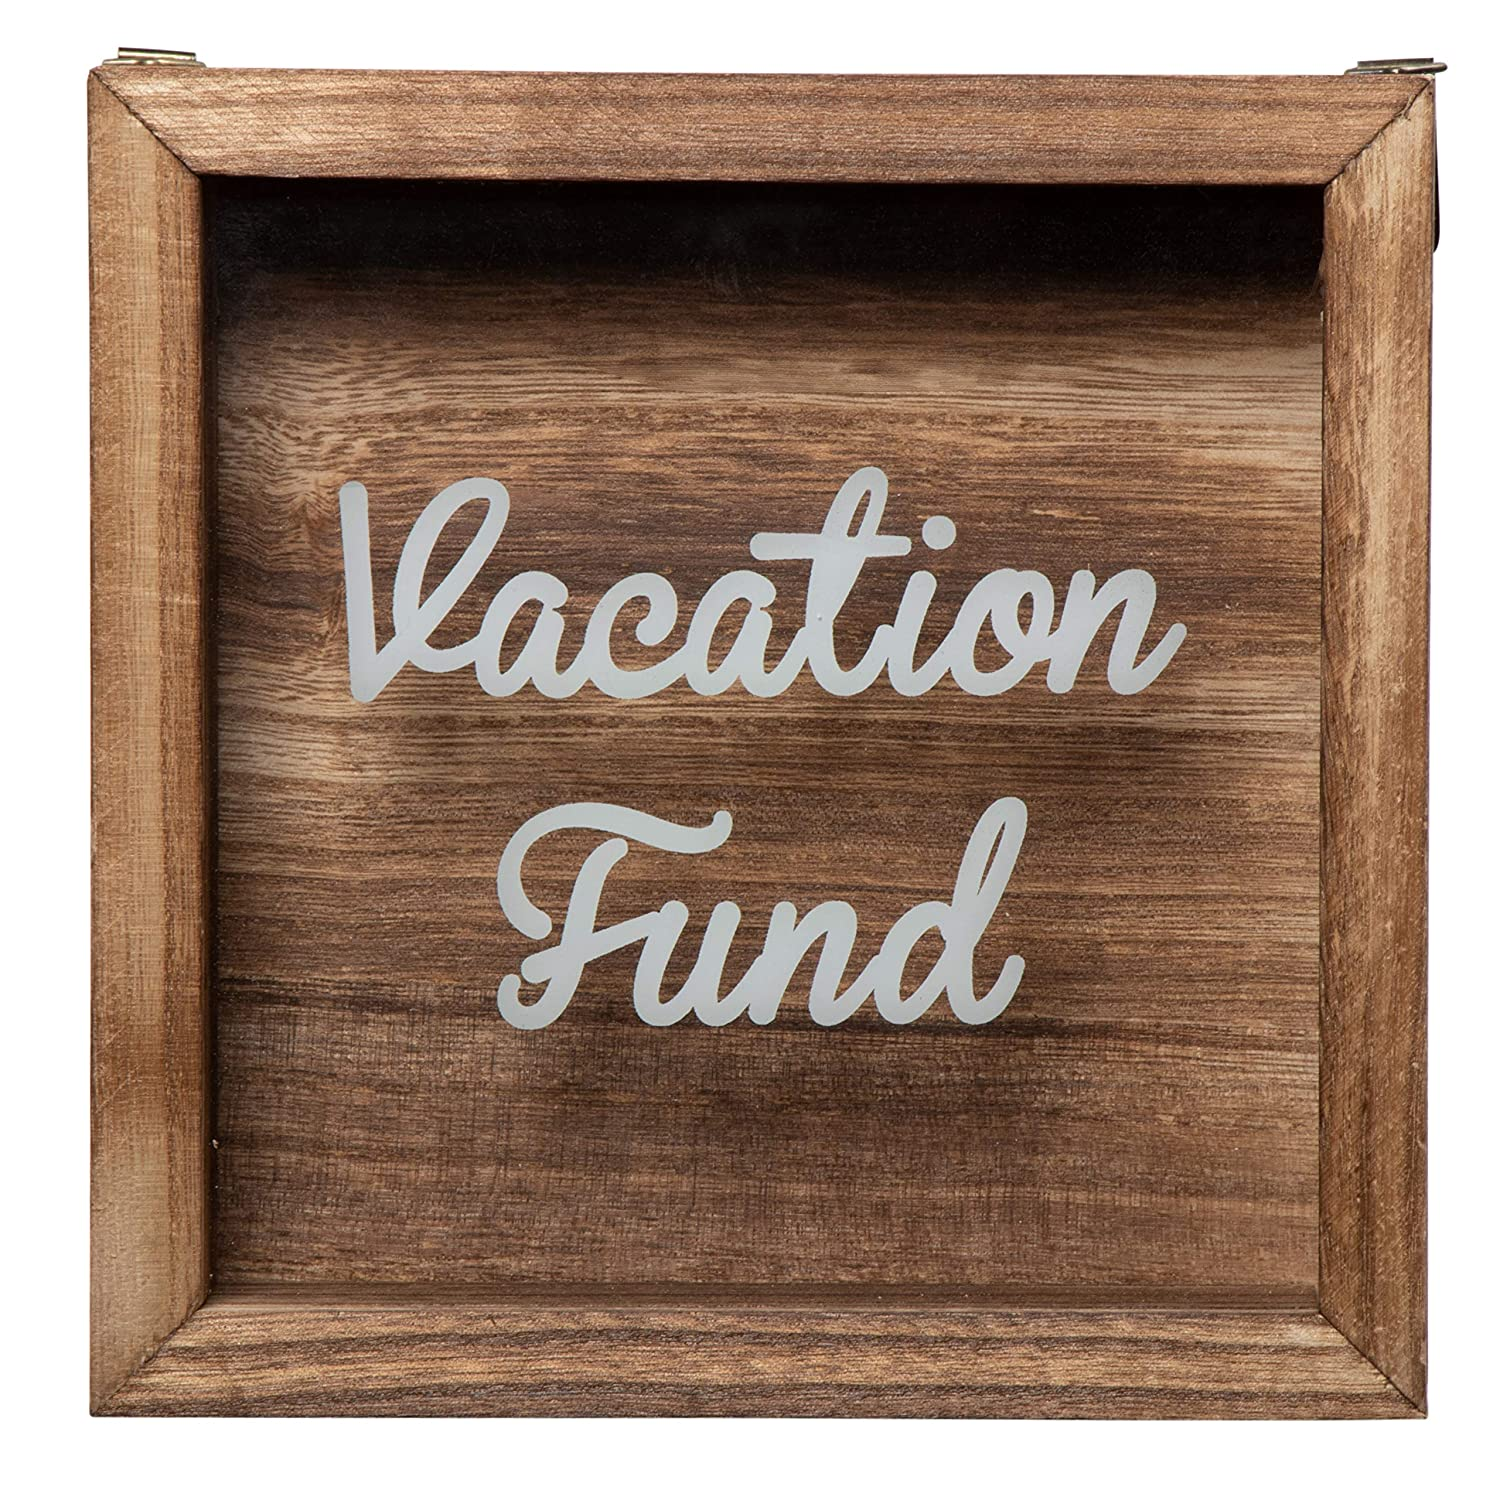 Genie Crafts Shadow Box Bank - Wooden Vacation Fund Shadow Box, Adult Piggy Bank, Money Saving Bank, for Travel Adventure Honeymoon Graduation Trip Fund, Natural Wood, 7.1 x 7.1 x 1.8 Inches